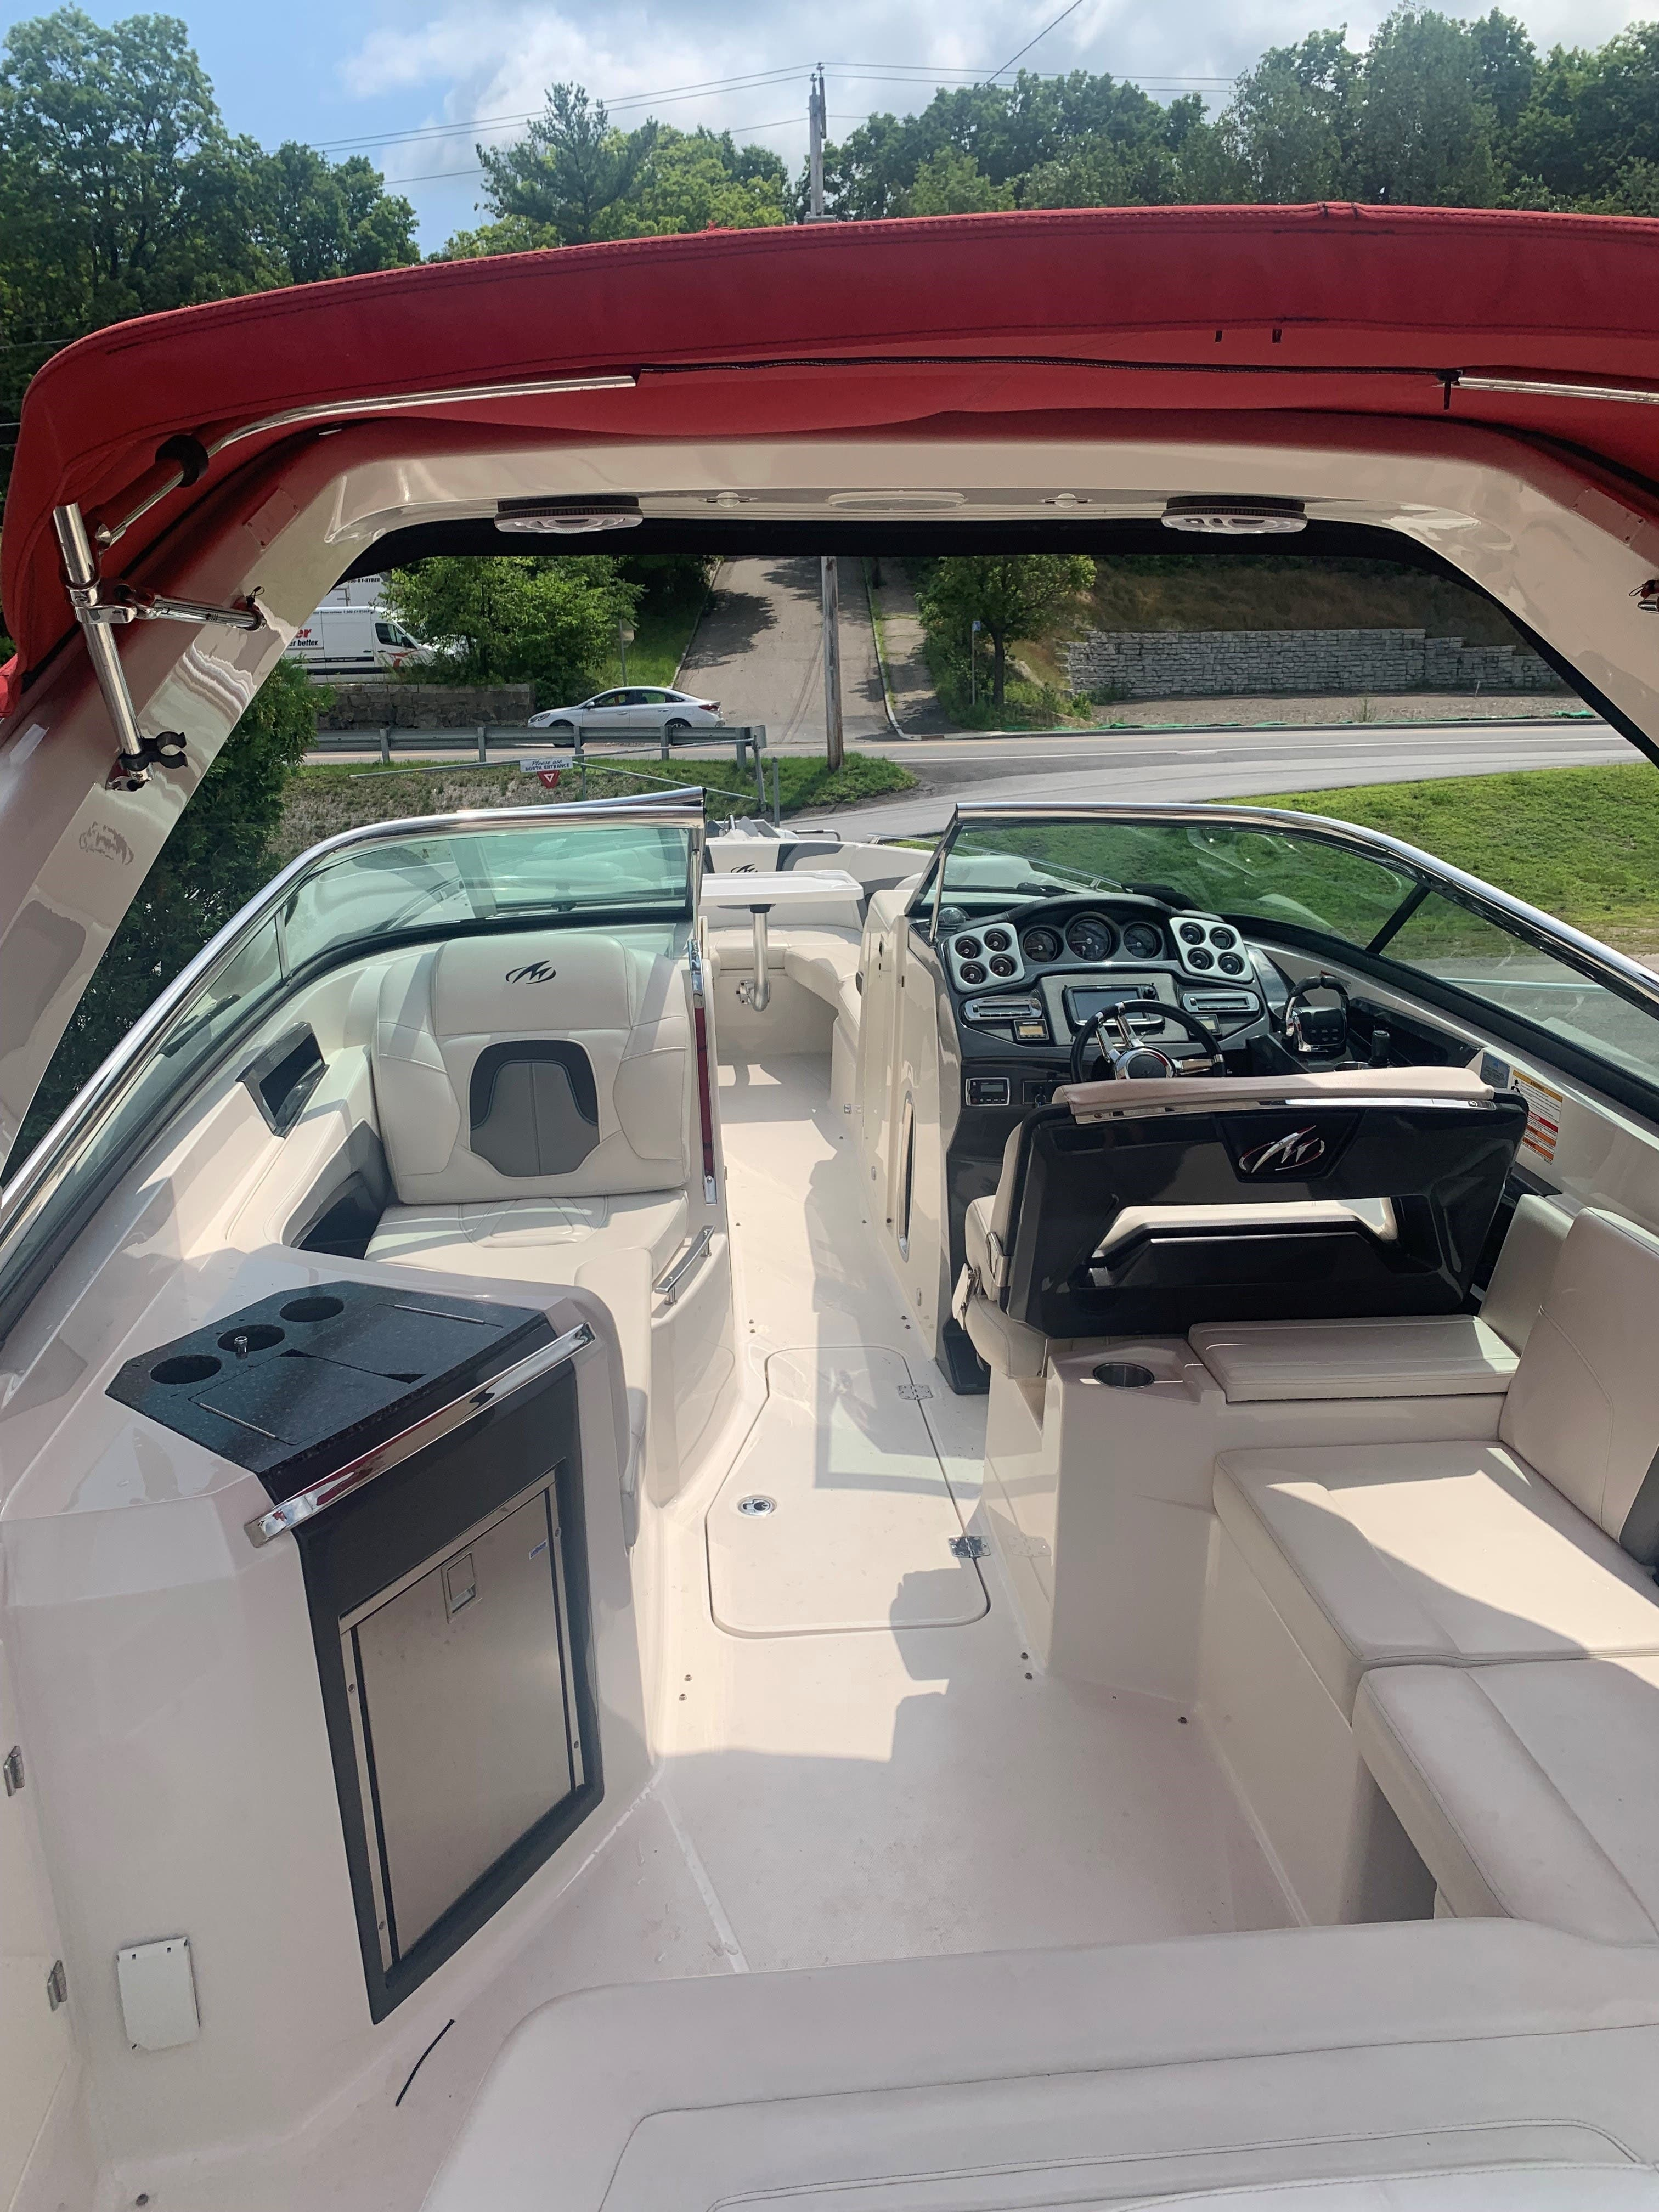 2013 Monterey boat for sale, model of the boat is 328SS & Image # 4 of 10